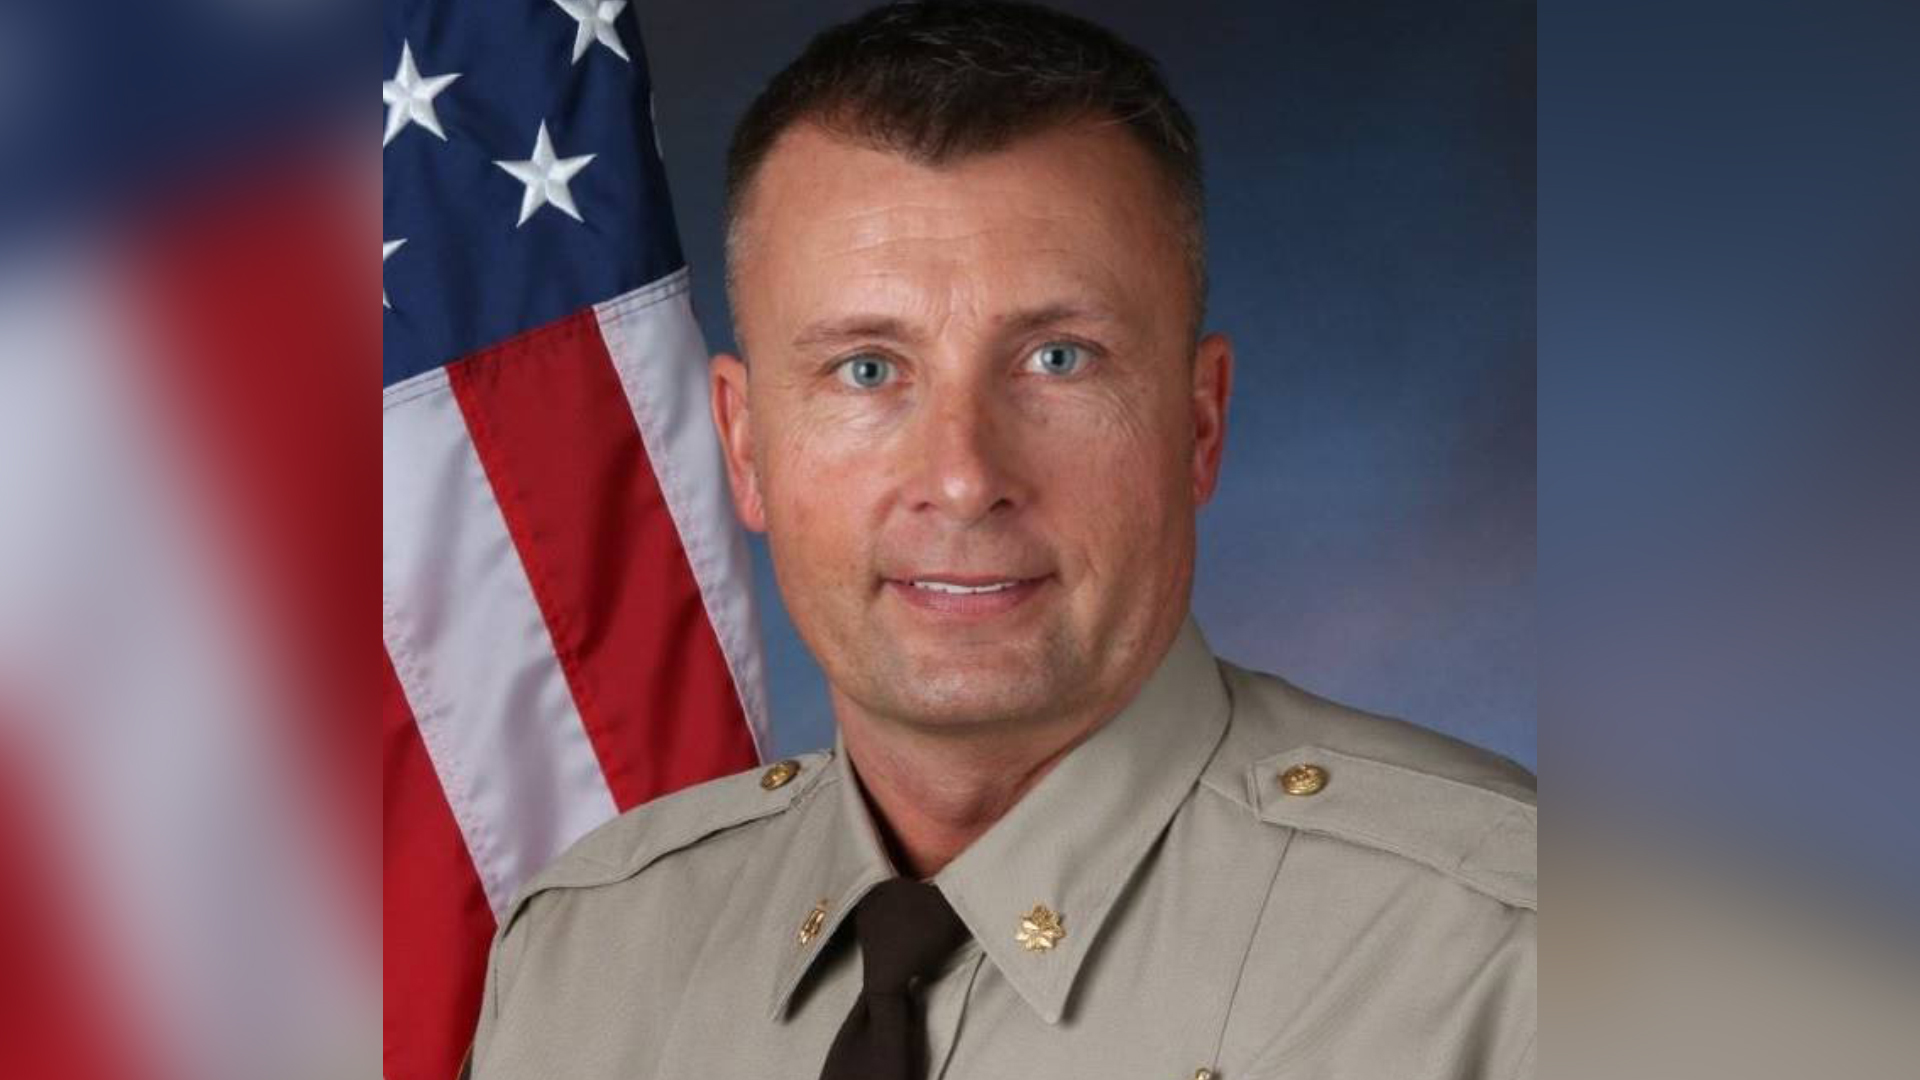 Montgomery County Sheriff Candidate Was Named In Co-Worker's Lawsuit